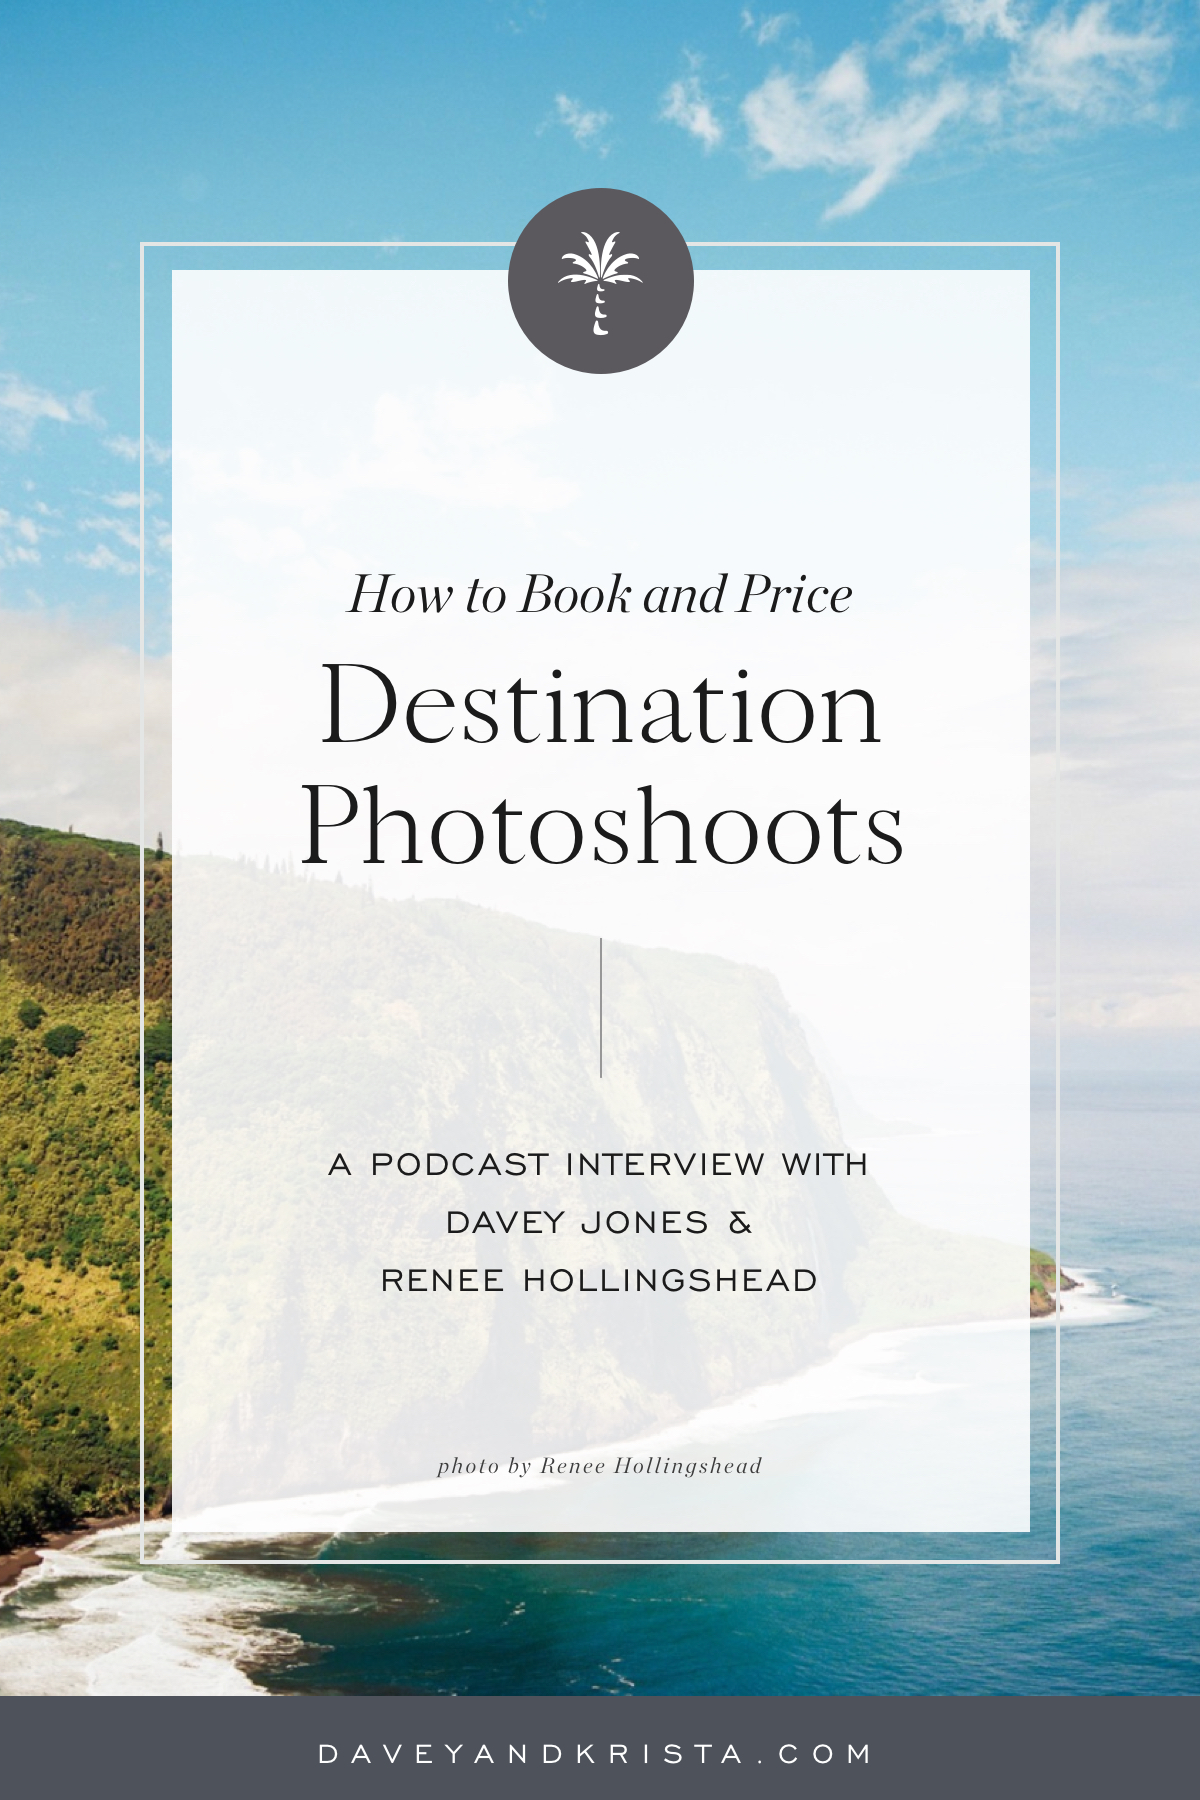 How to Book and Price Destination Photoshoots | Brands that Book podcast | Davey & Krista